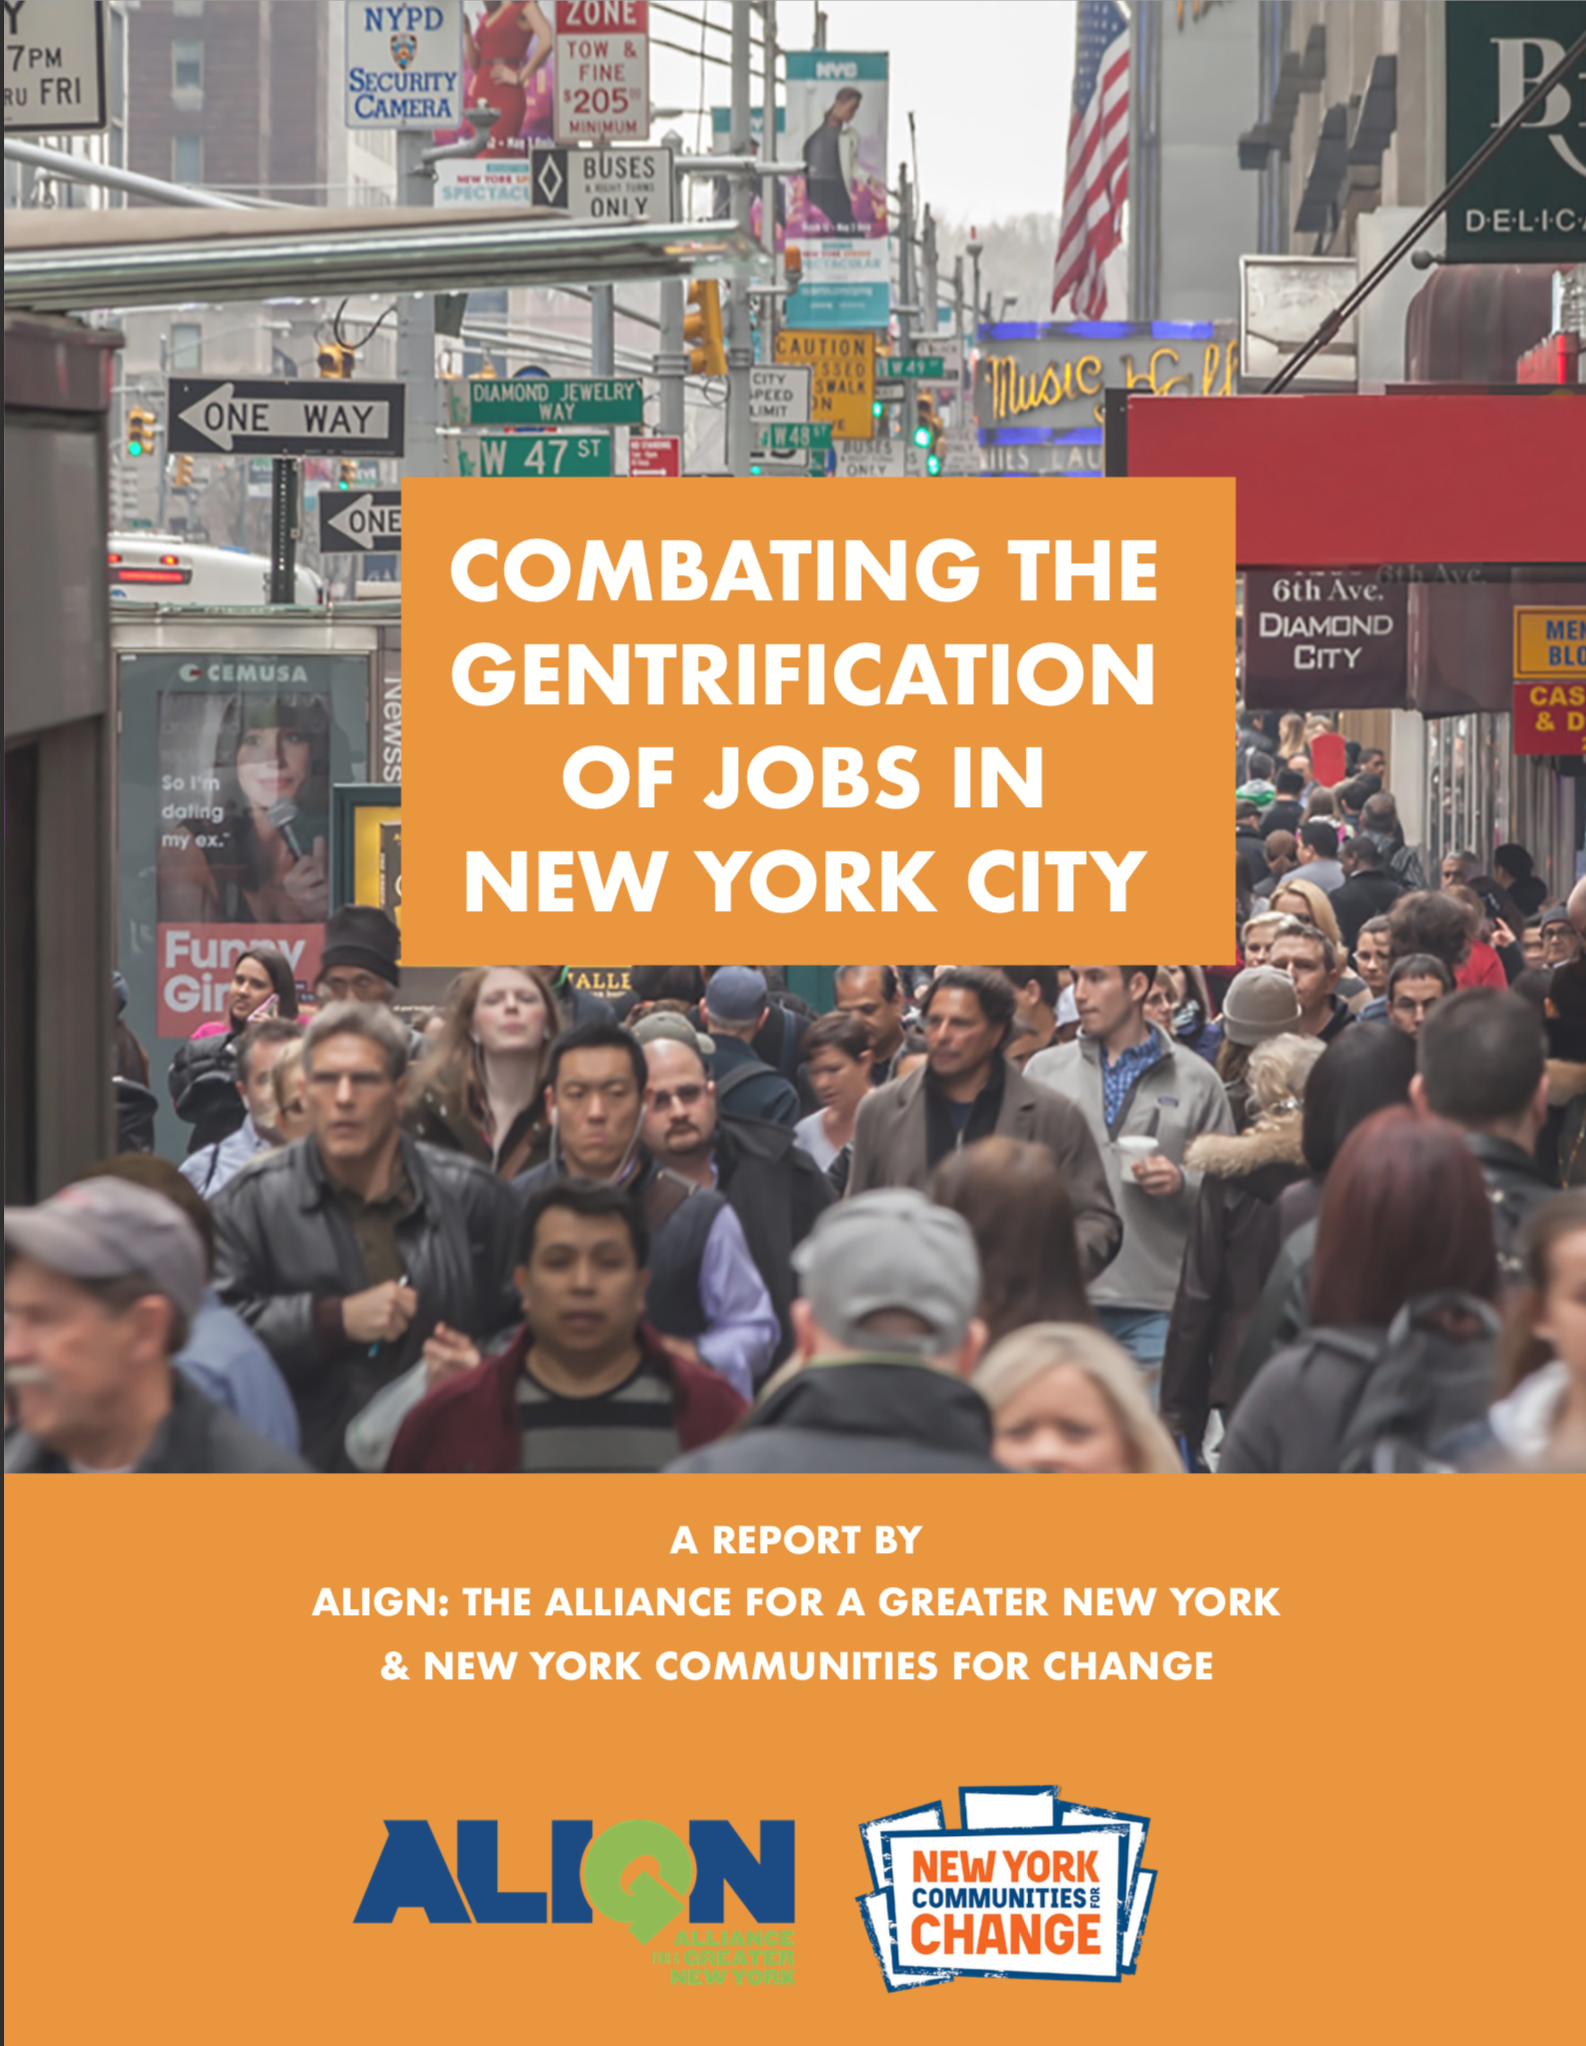 Combating the Gentrification of Jobs in New York City